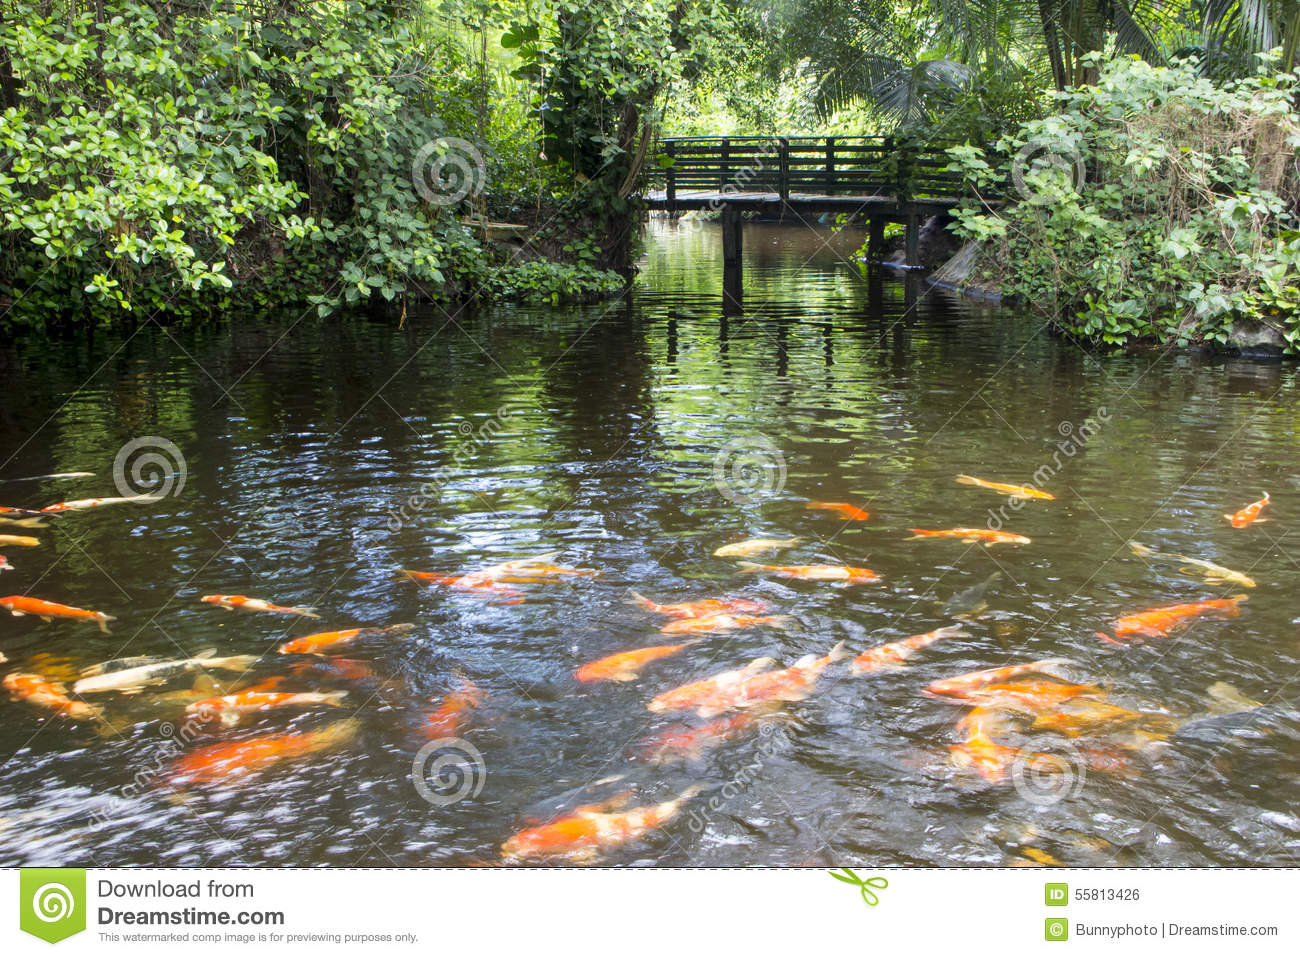 Colorful carp fish in the pond with wooden bridge stock for Colorful pond fish